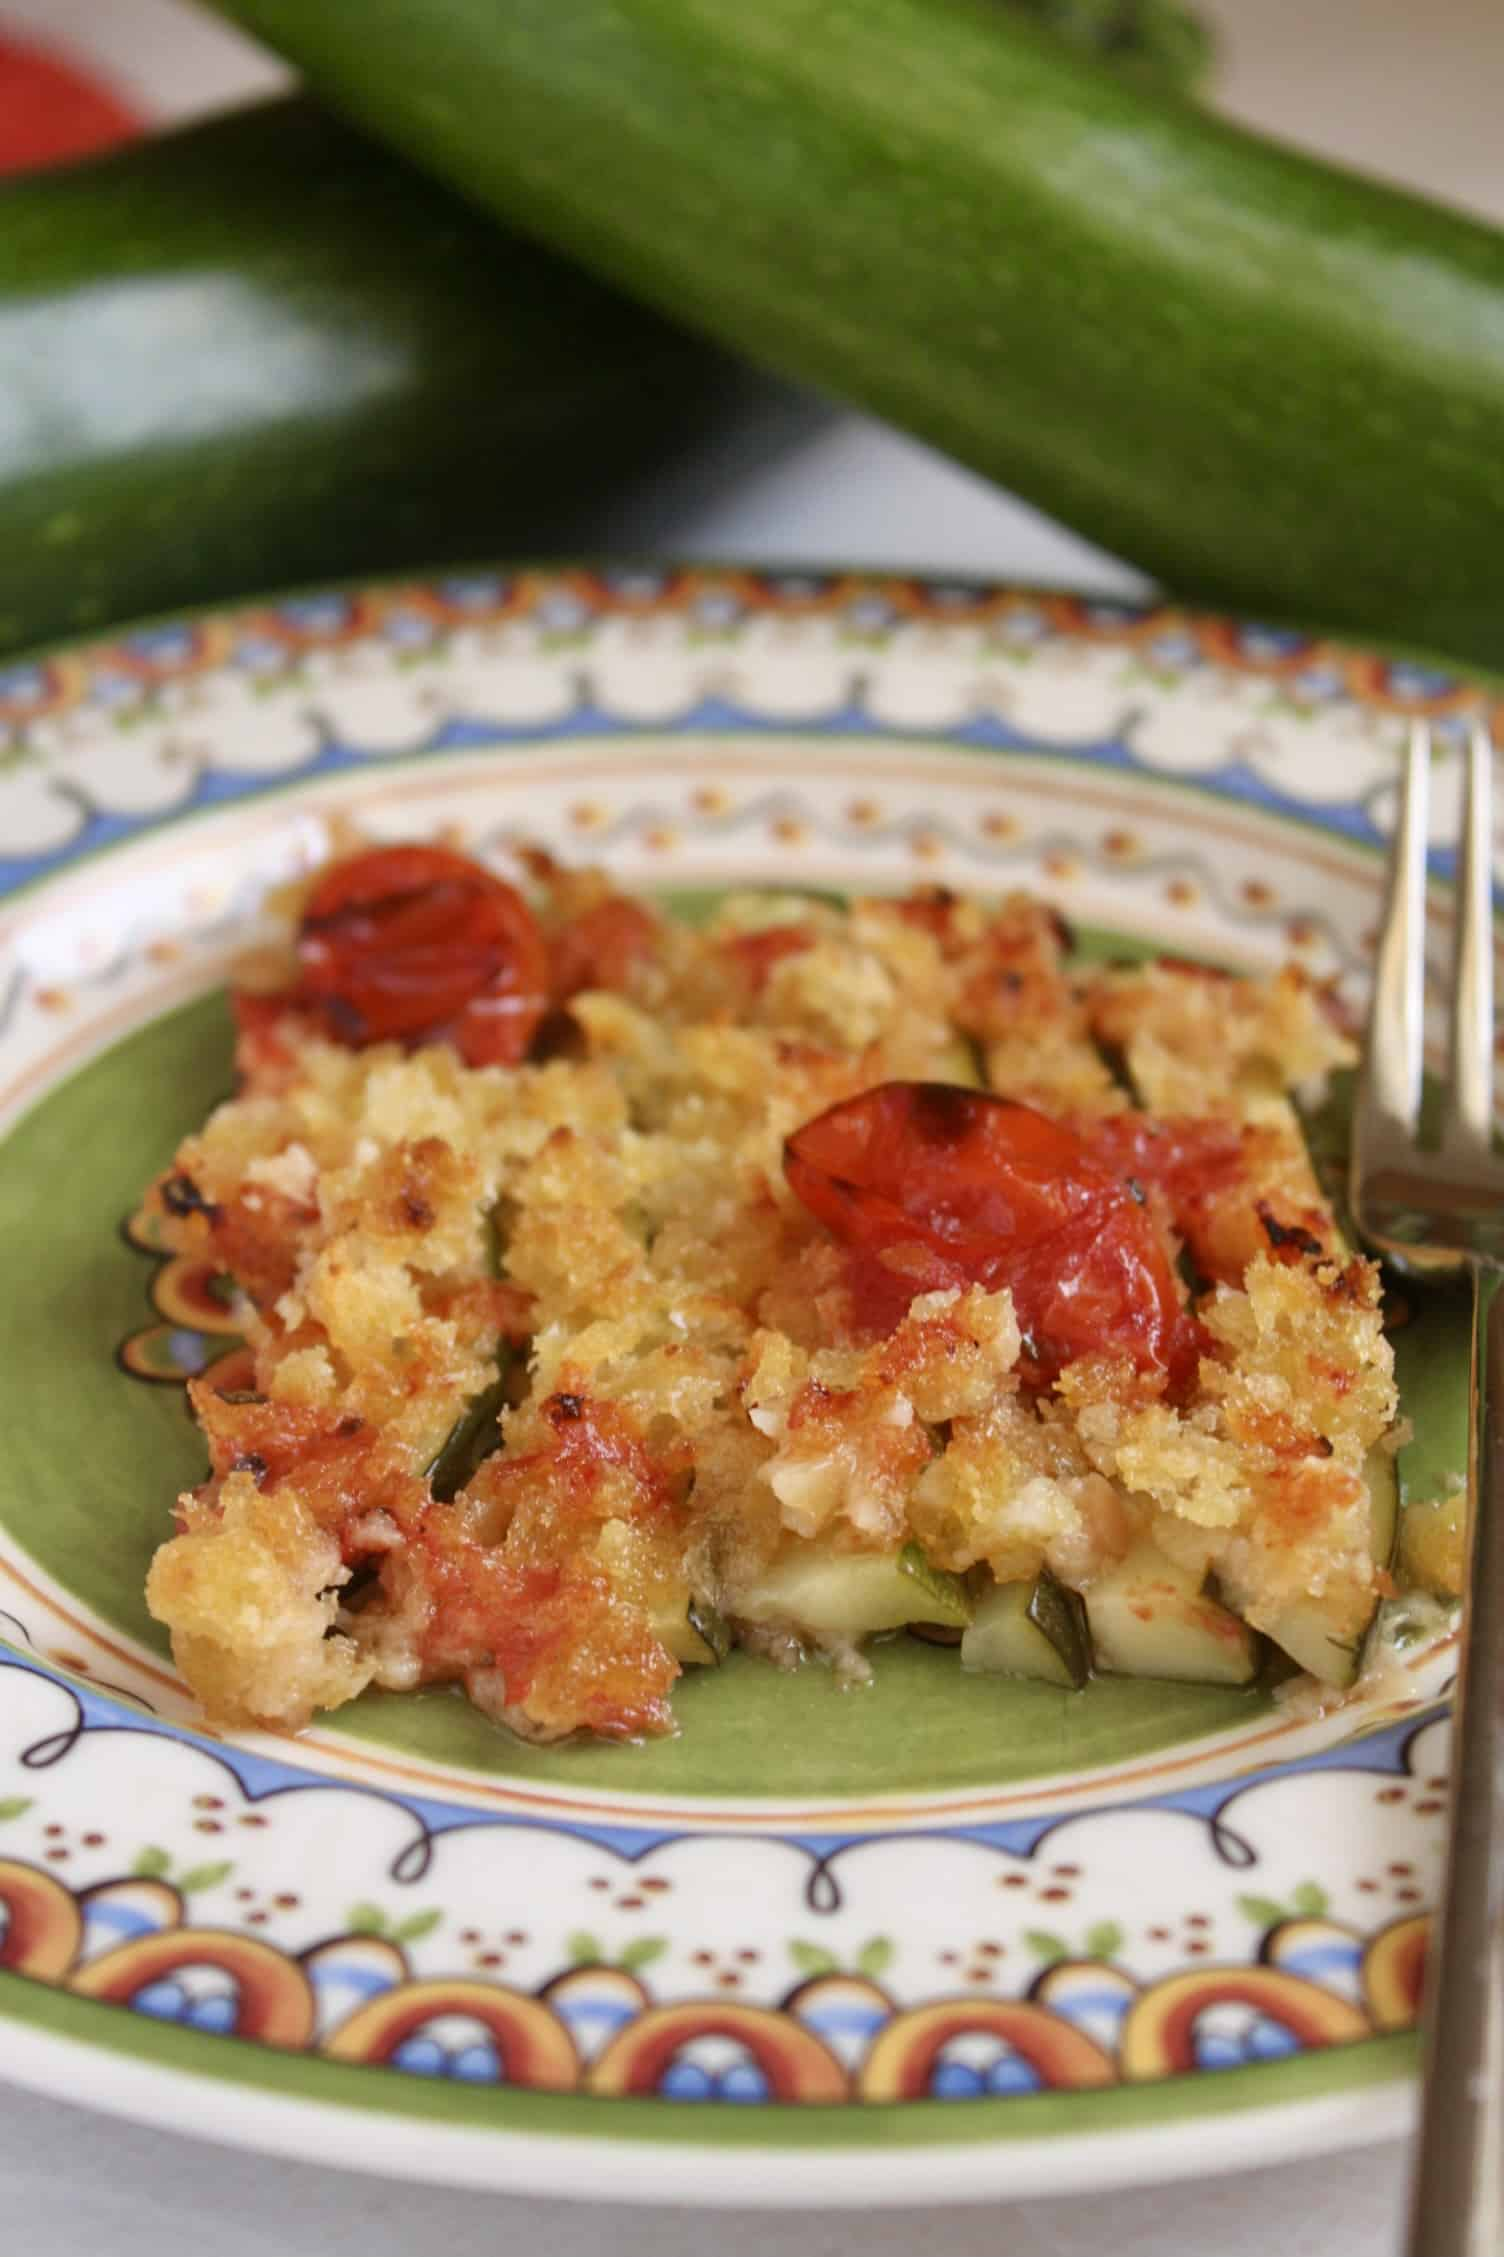 baked zucchini on a plate